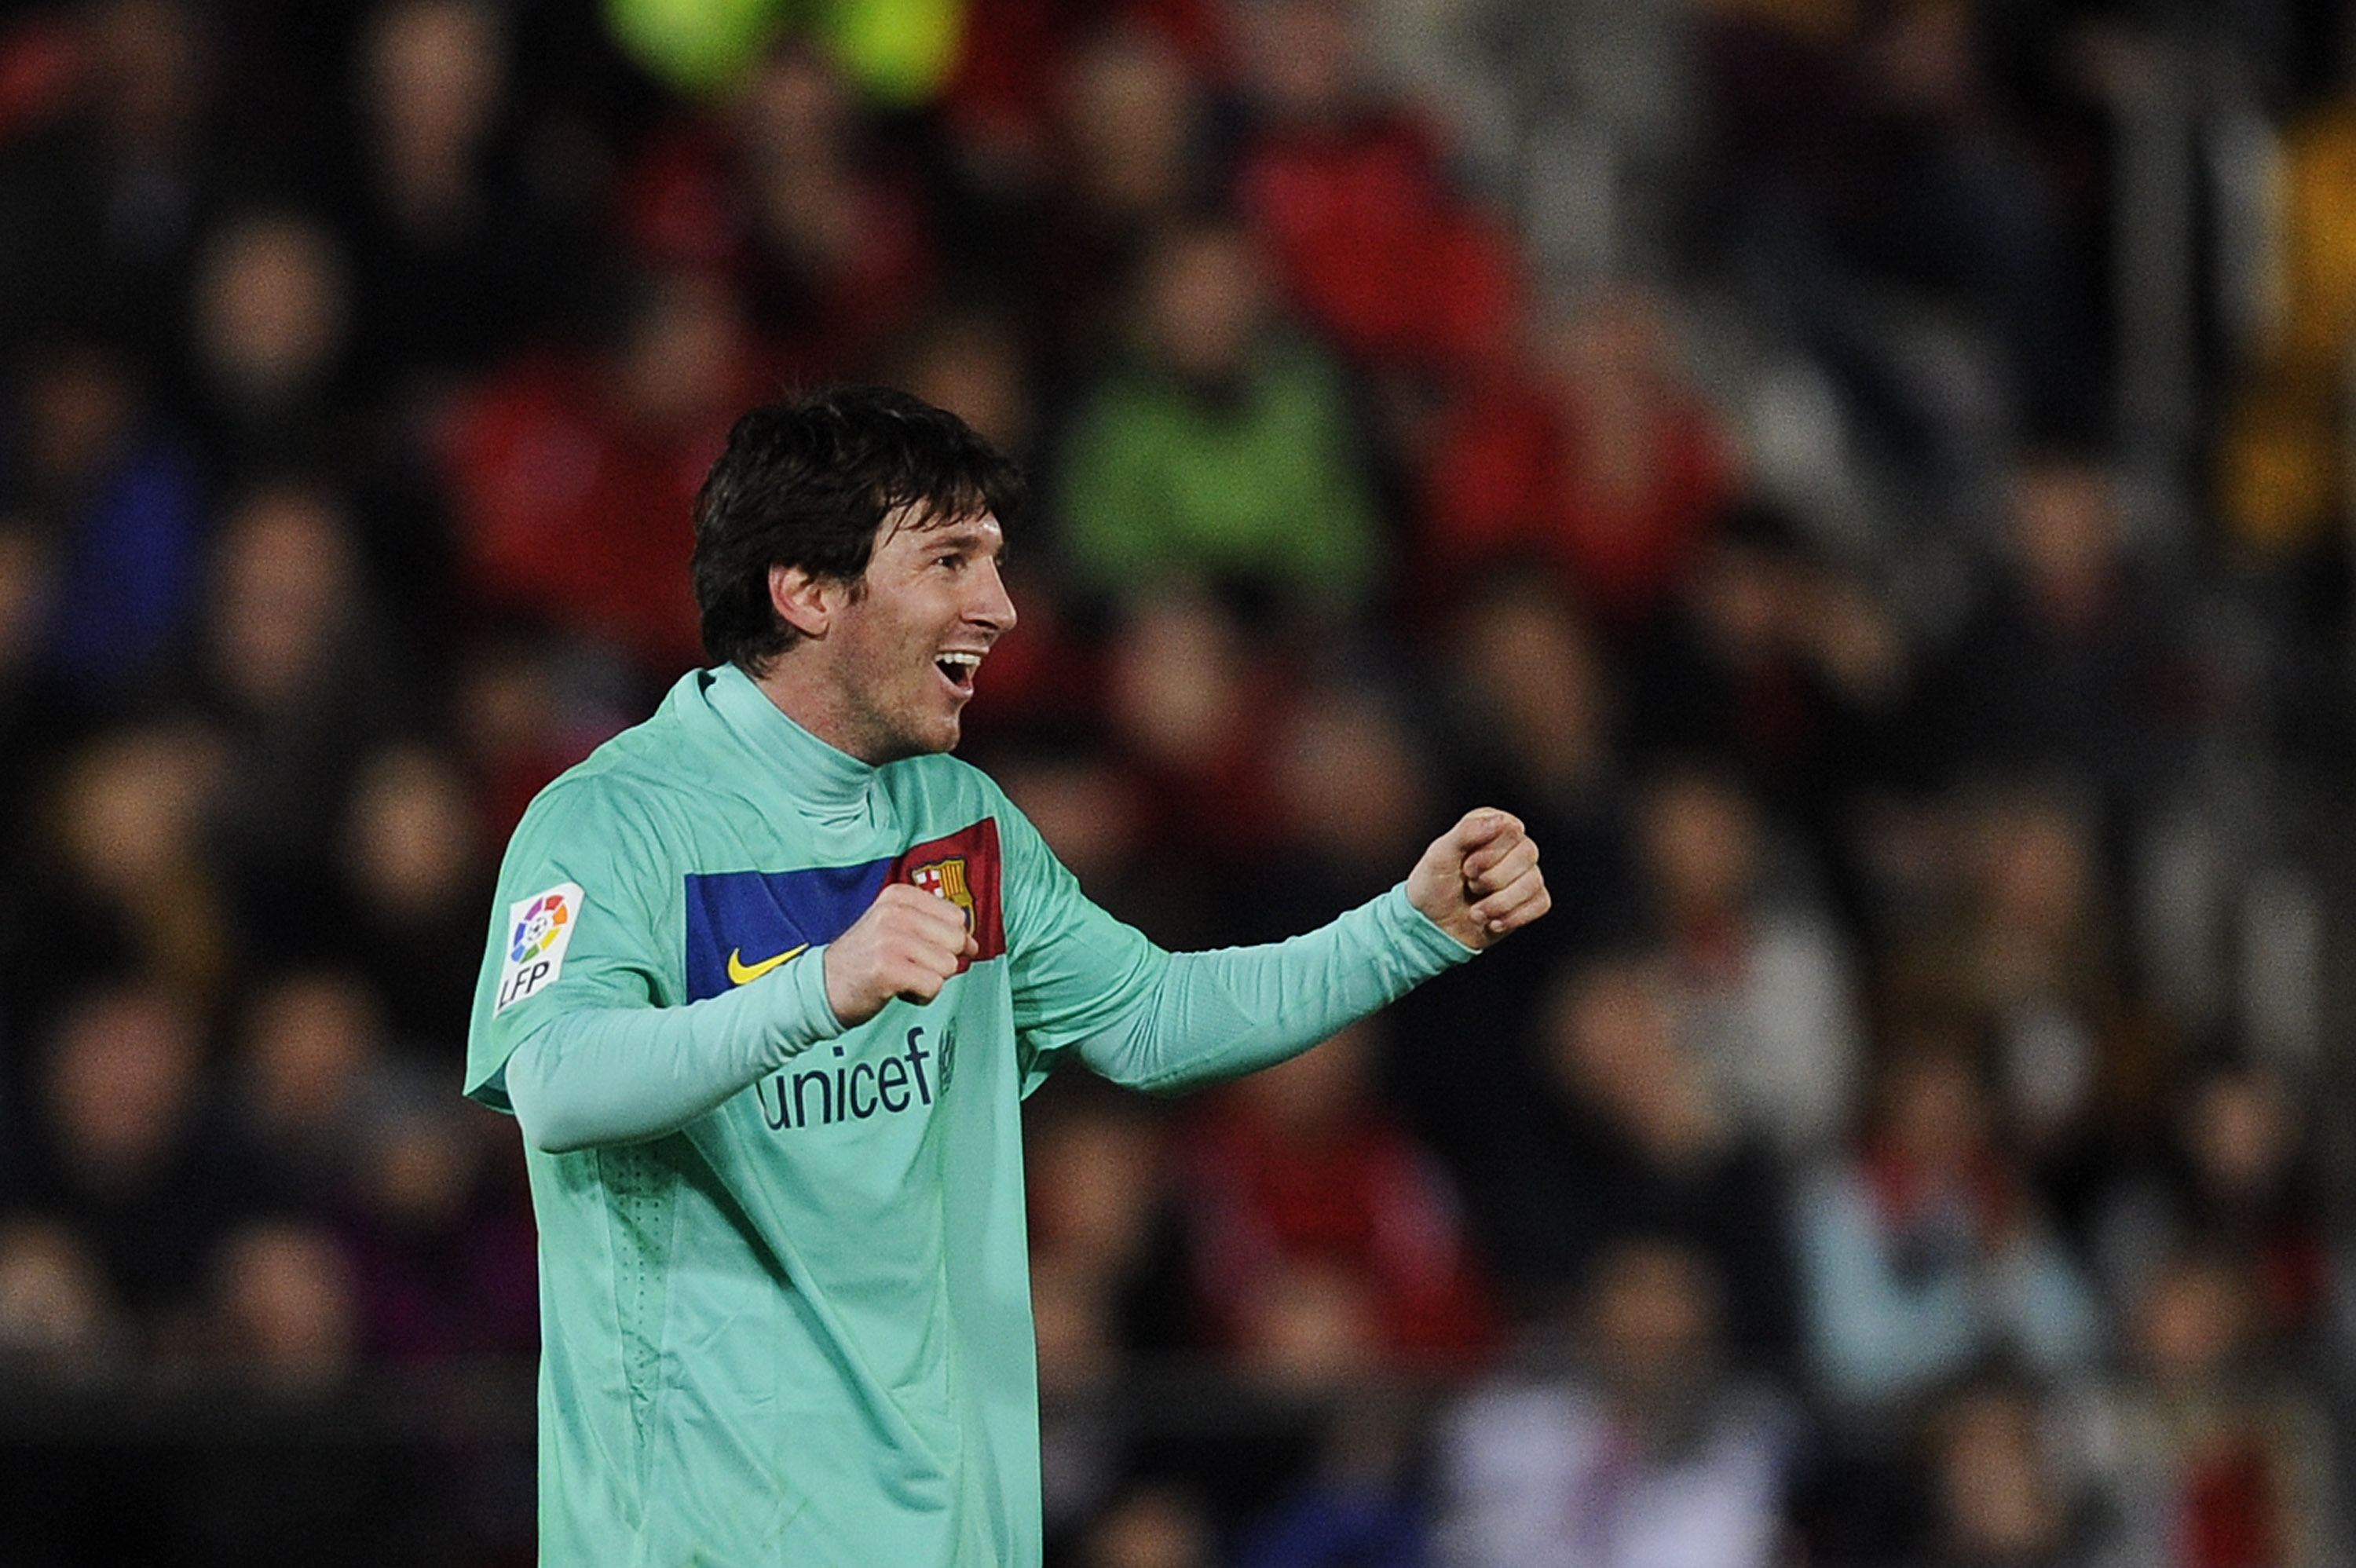 MALLORCA, SPAIN - FEBRUARY 26: Lionel Messi of Barcelona celebrates after scoring his first team's goal during the La Liga match between Mallorca and Barcelona at Iberstar Stadium on February 26, 2011 in Mallorca, Spain.  (Photo by David Ramos/Getty Image